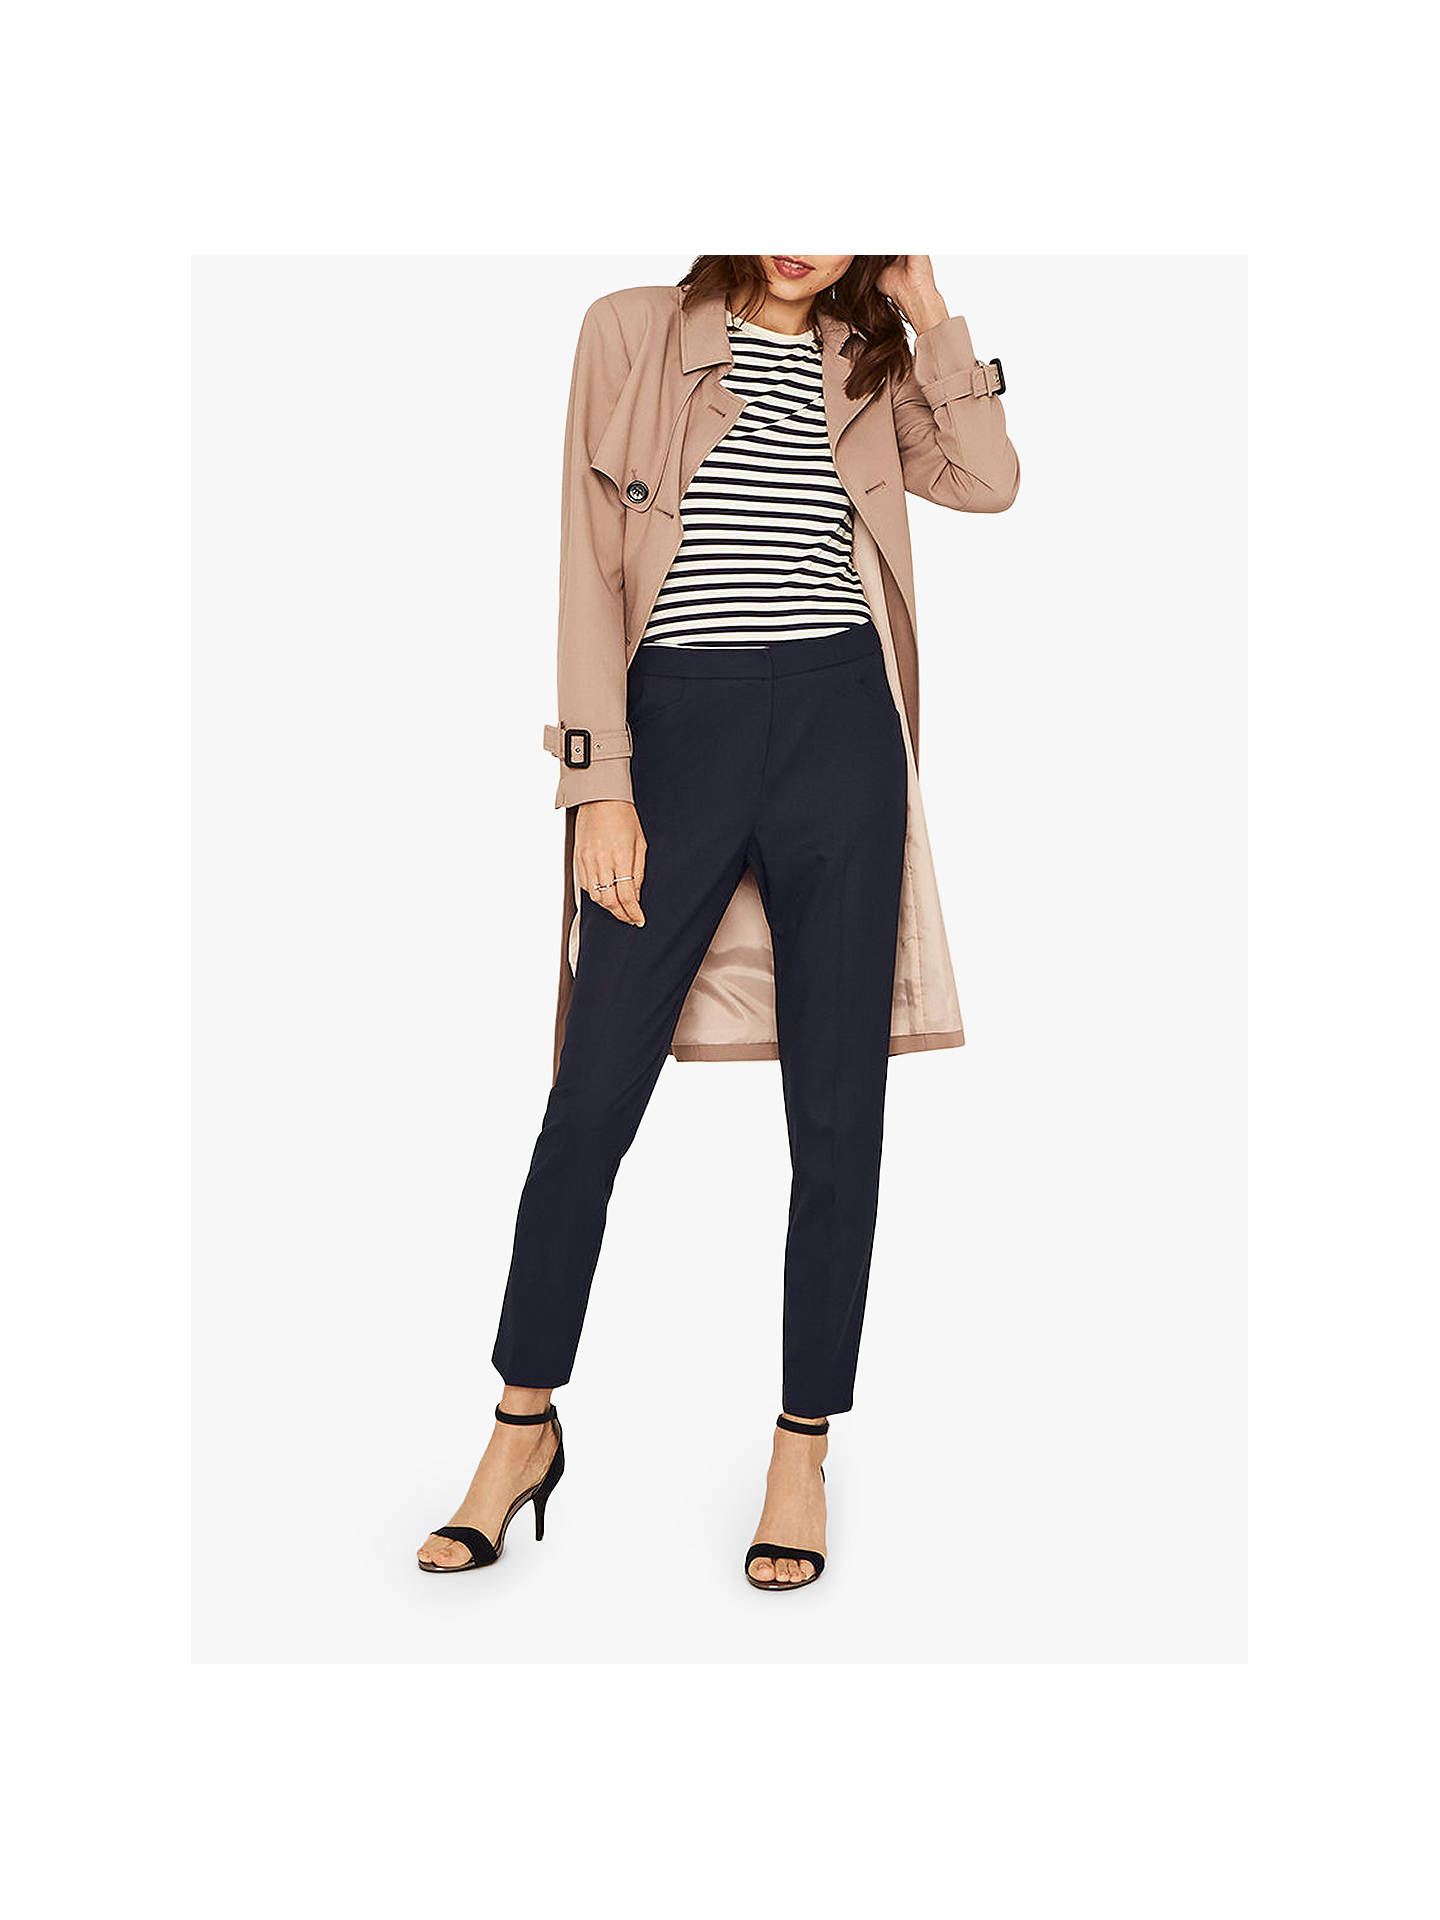 BuyOasis Workwear Trousers, Navy, 8 Online at johnlewis.com